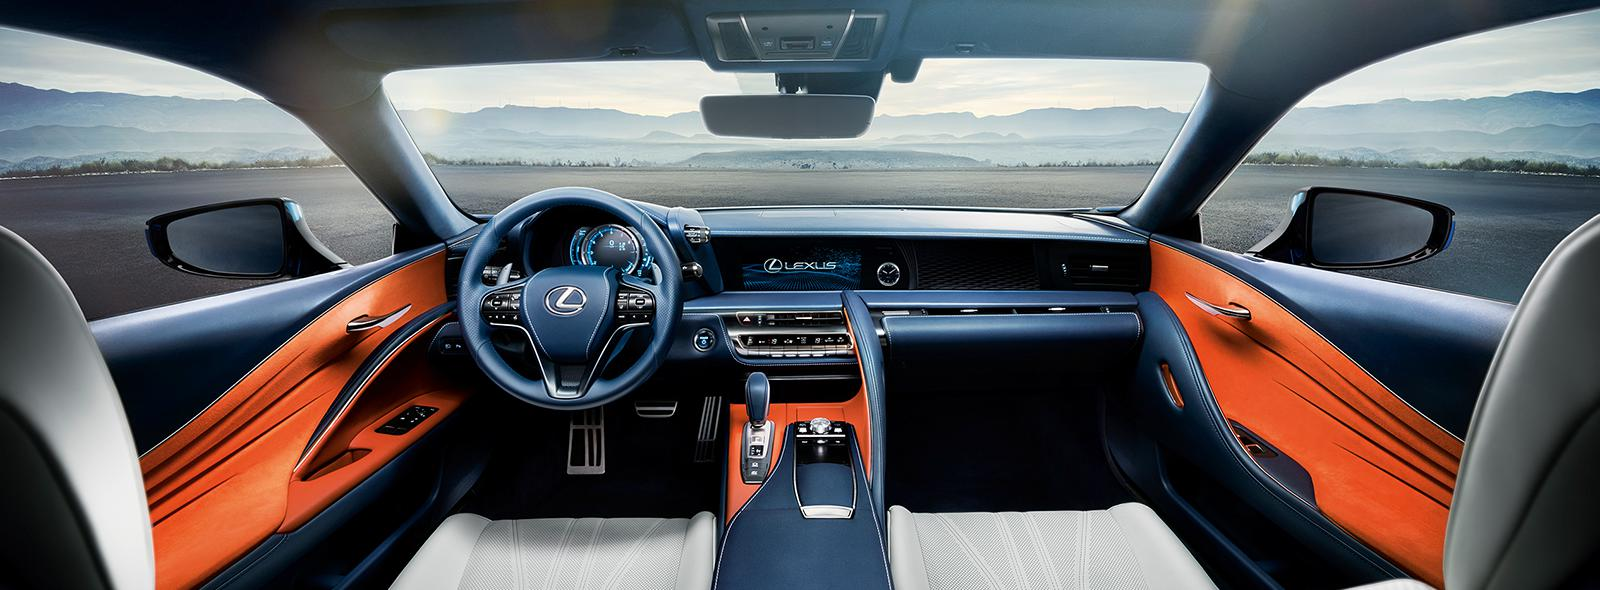 Lexus LC 500h full front interior shot